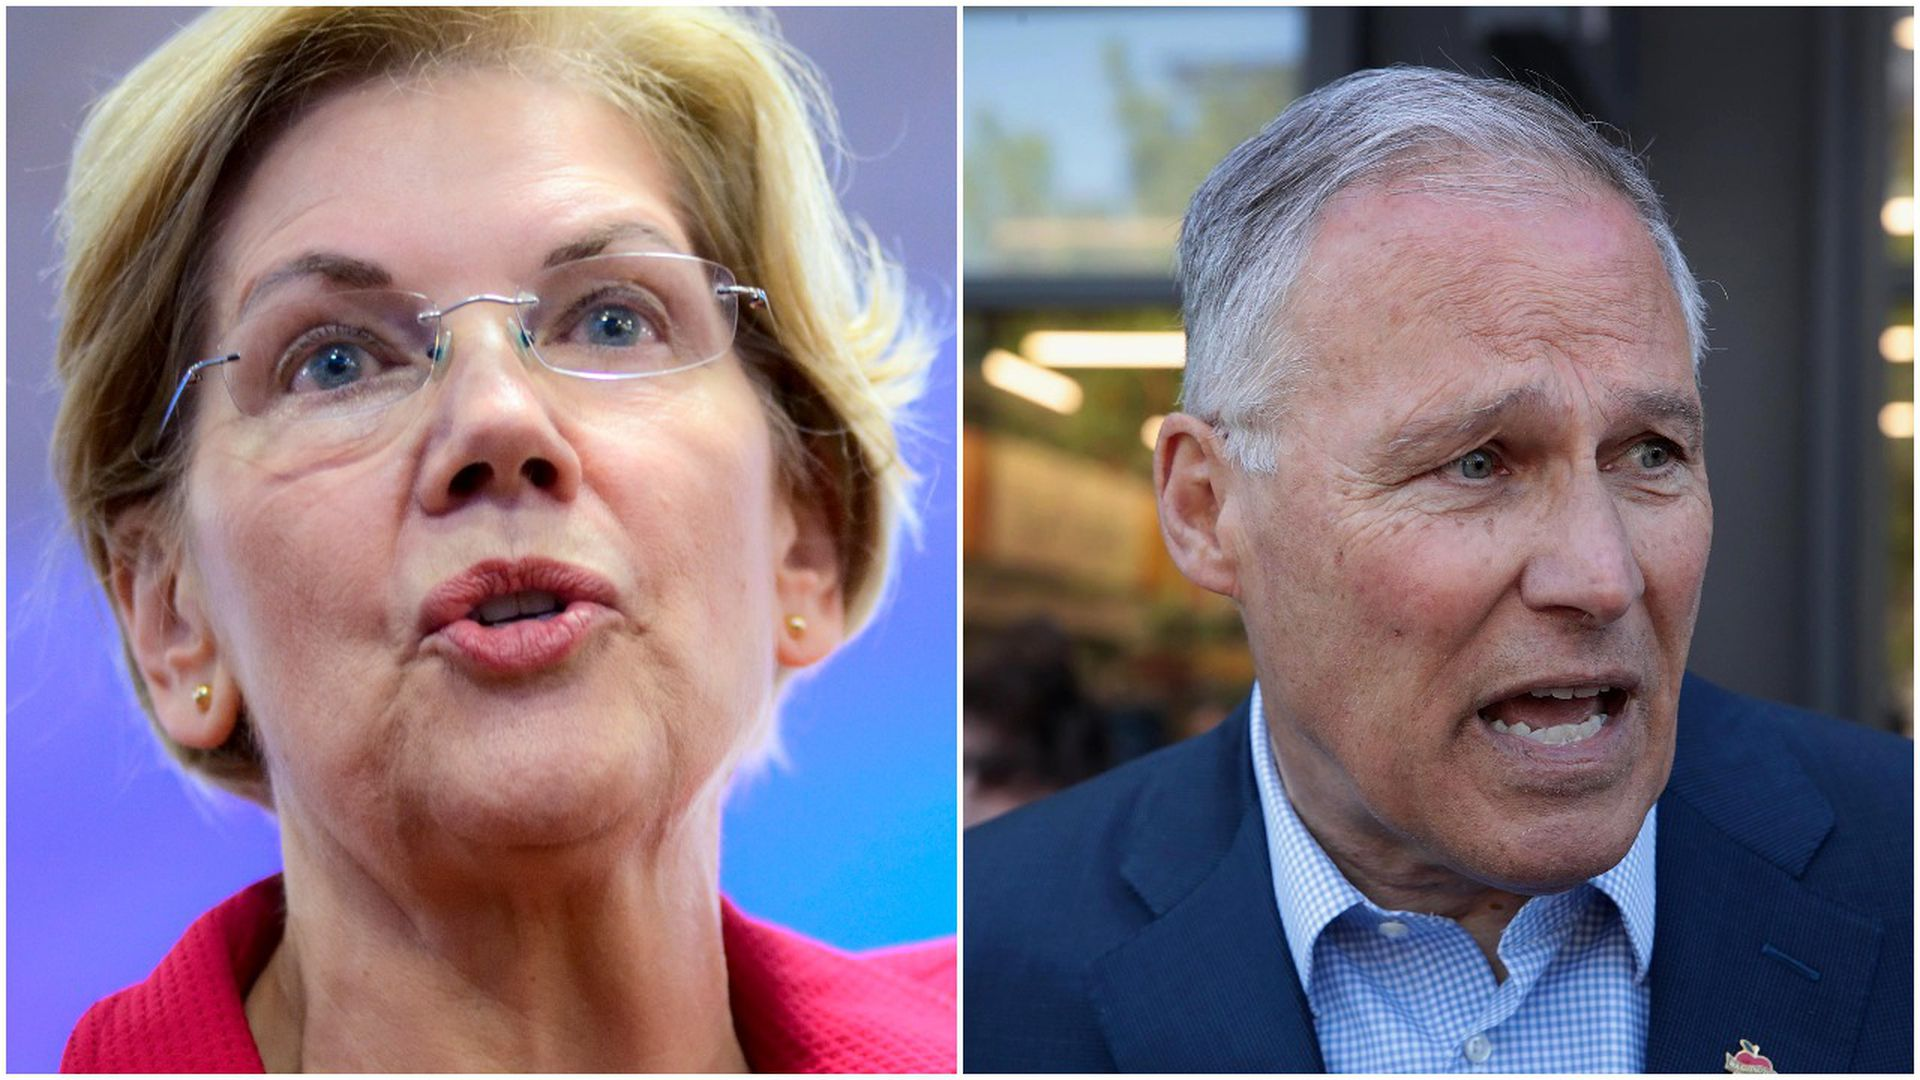 This image is a two way split screen of Elizabeth Warren and Jay Inslee.